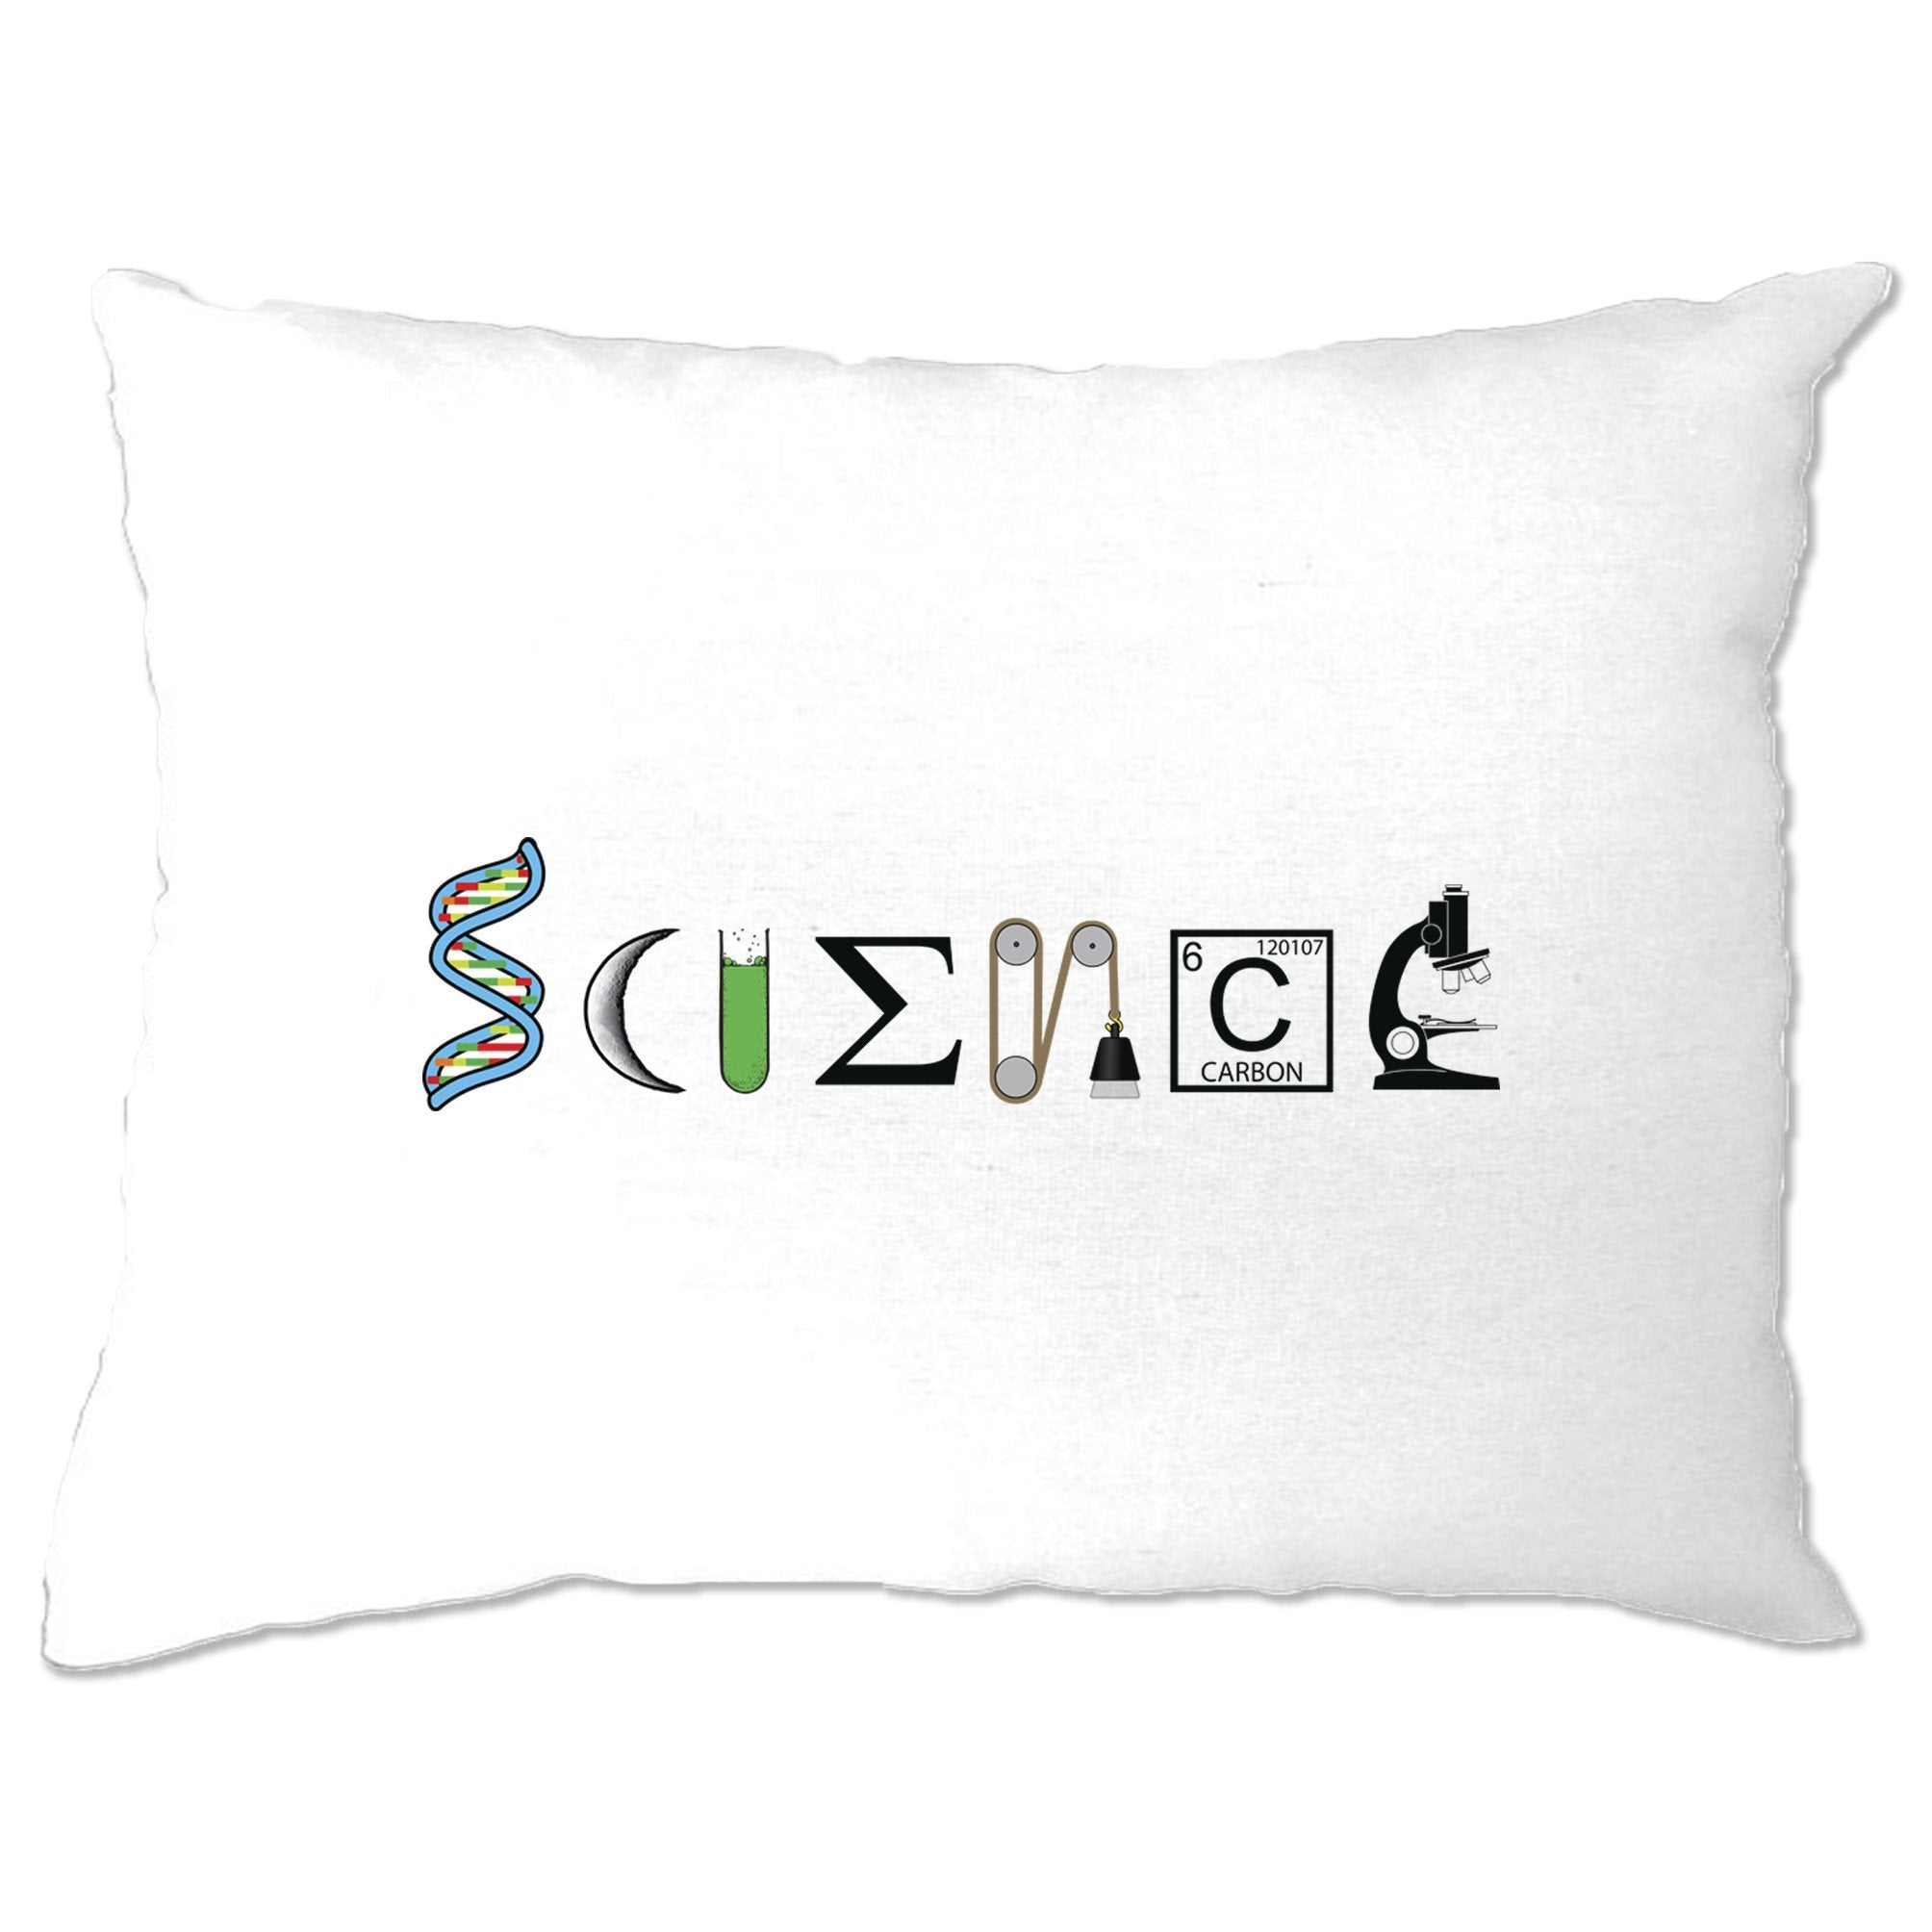 The Word Science Pillow Case Made From Scientific Things